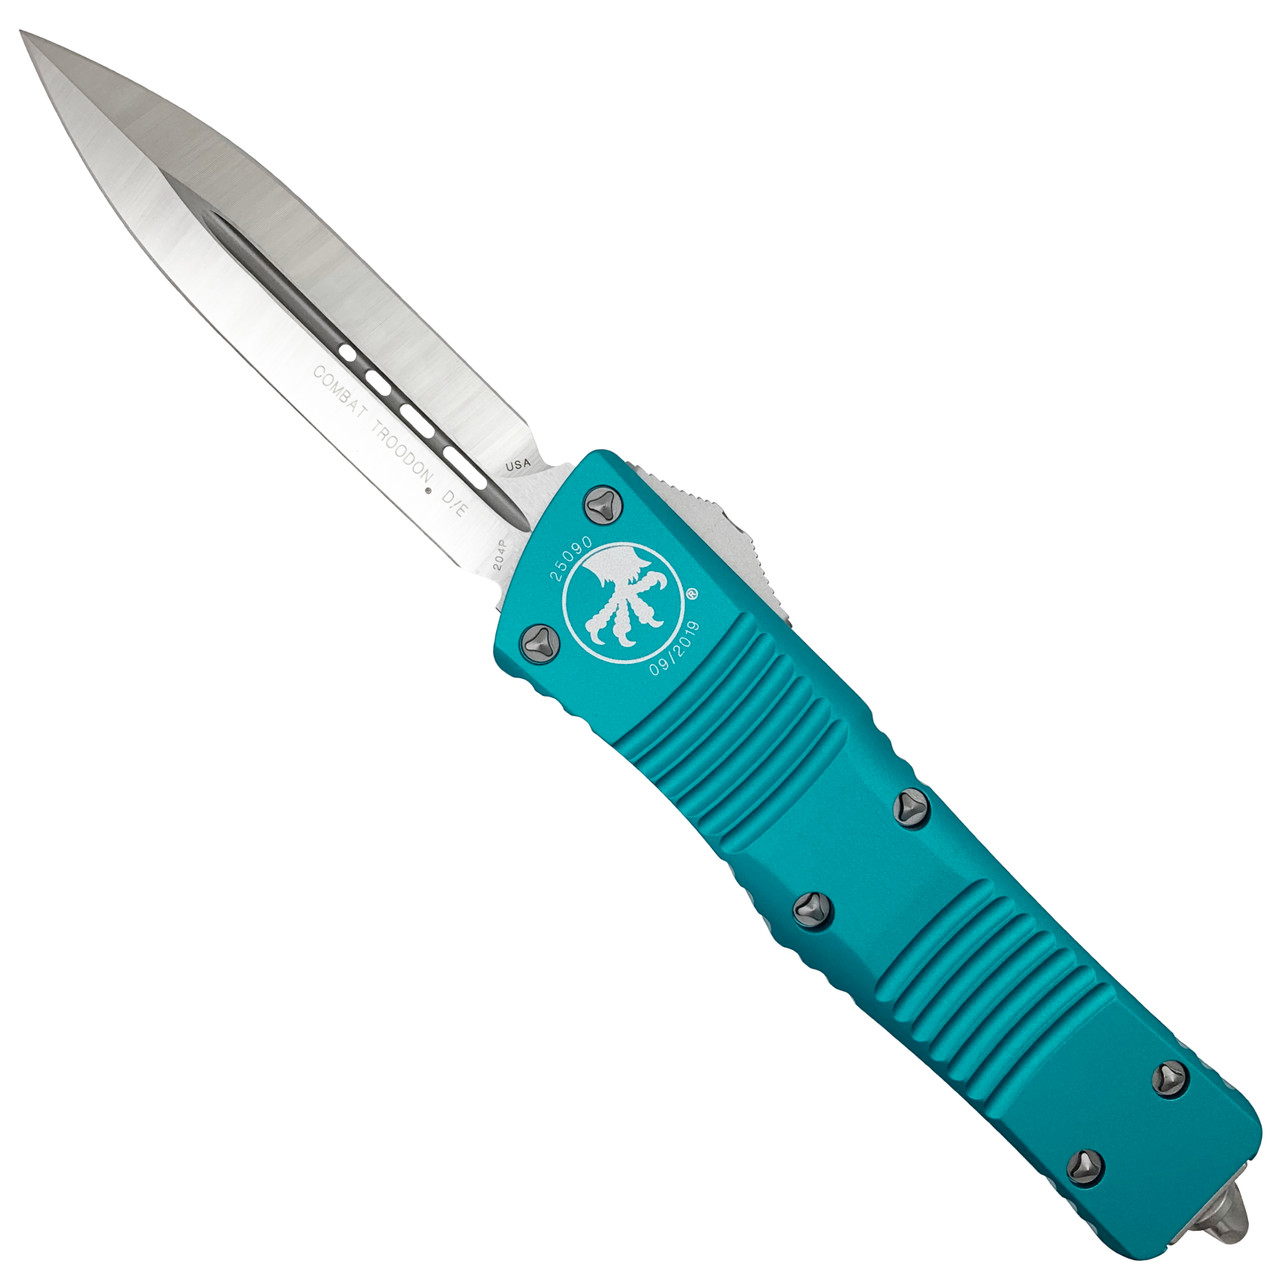 Microtech Turquoise Combat Troodon Dagger OTF Auto Knife, Satin Blade